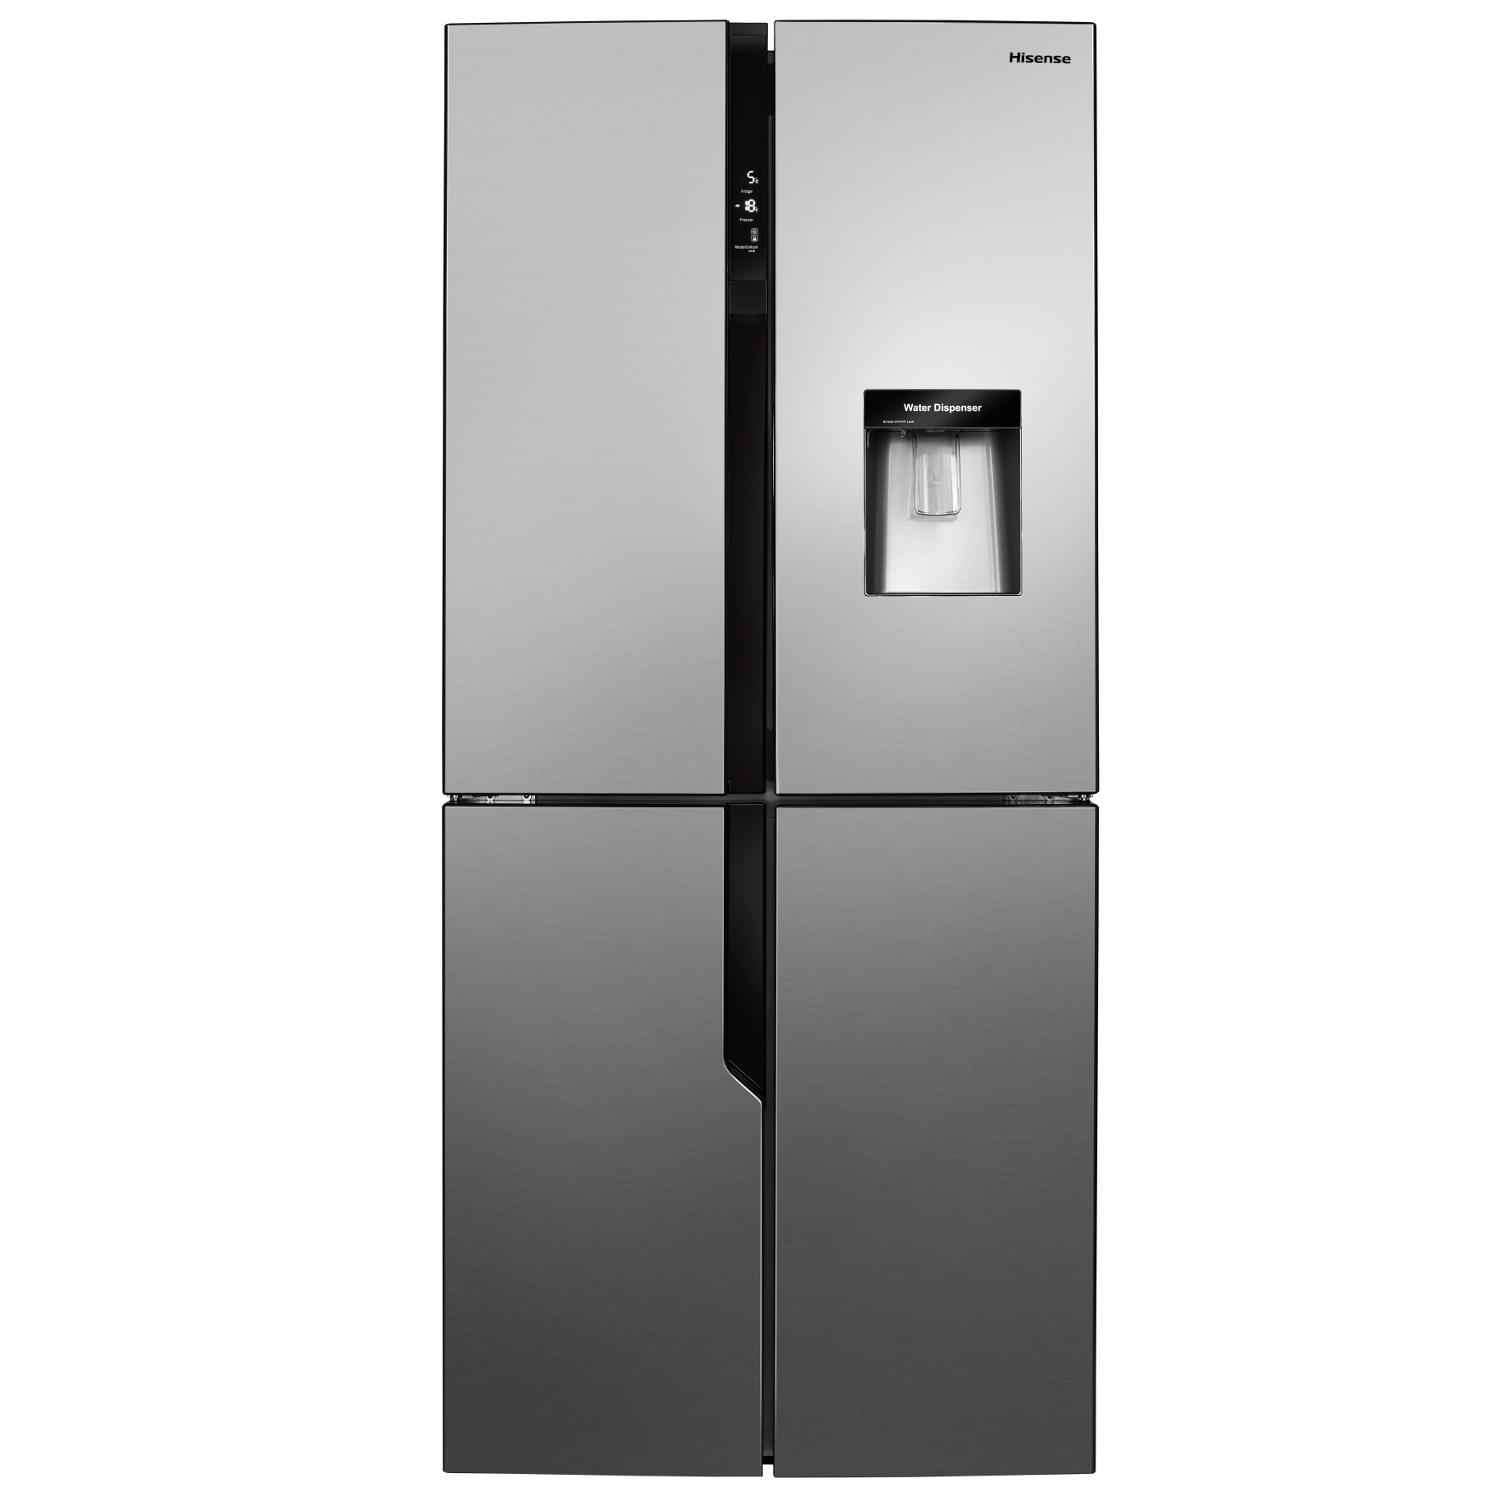 Hisense American Style Fridge Freezer - Stainless Steel Effect  - 7